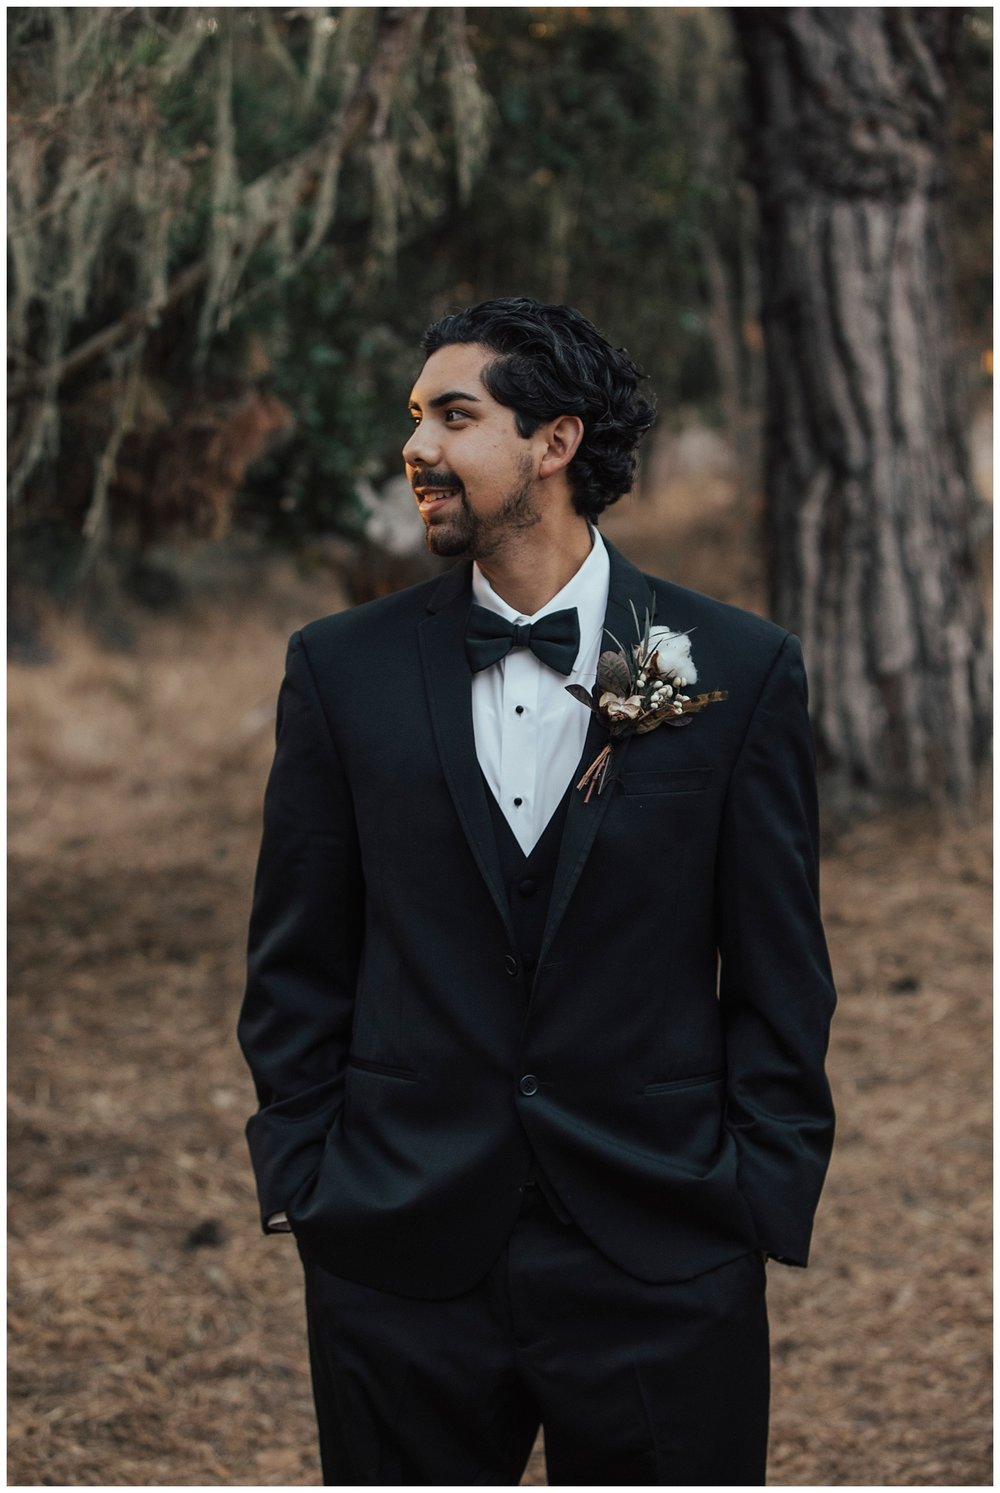 carol oliva photography Edward in black tuxedo